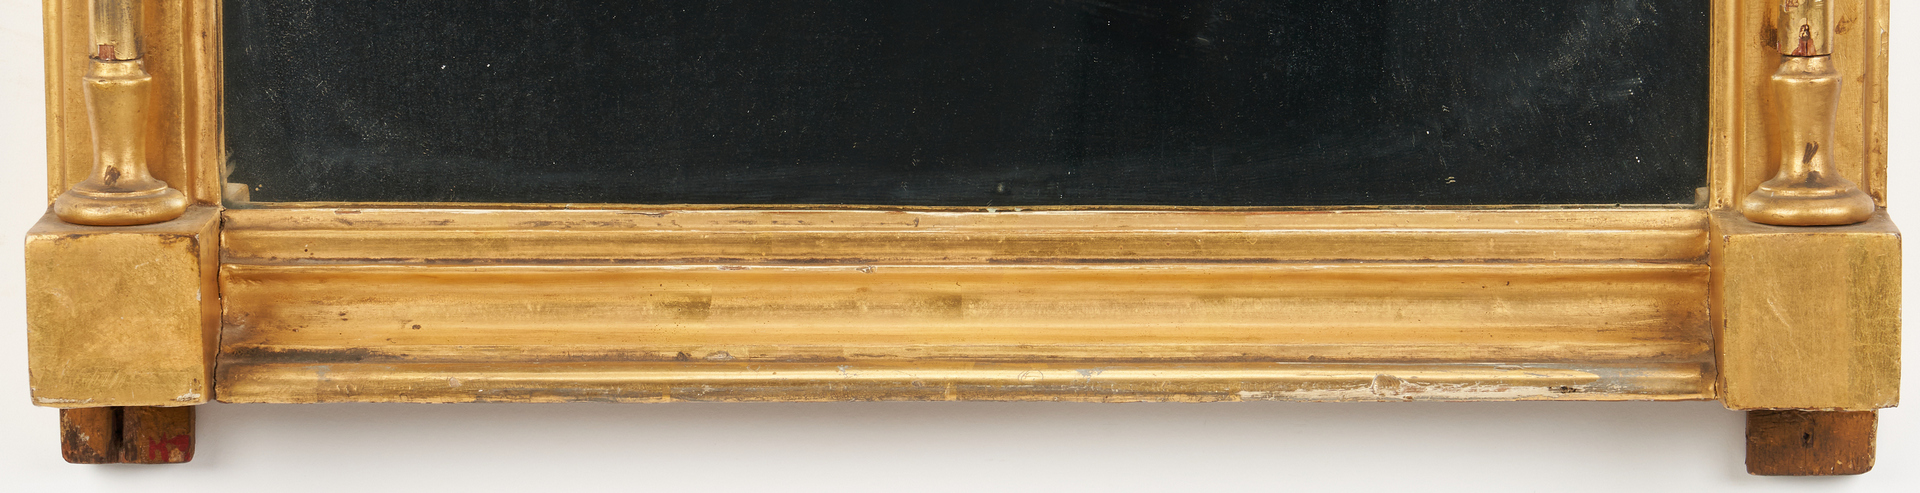 Lot 420: Sheraton Mirror with Pate sur Pate Panels